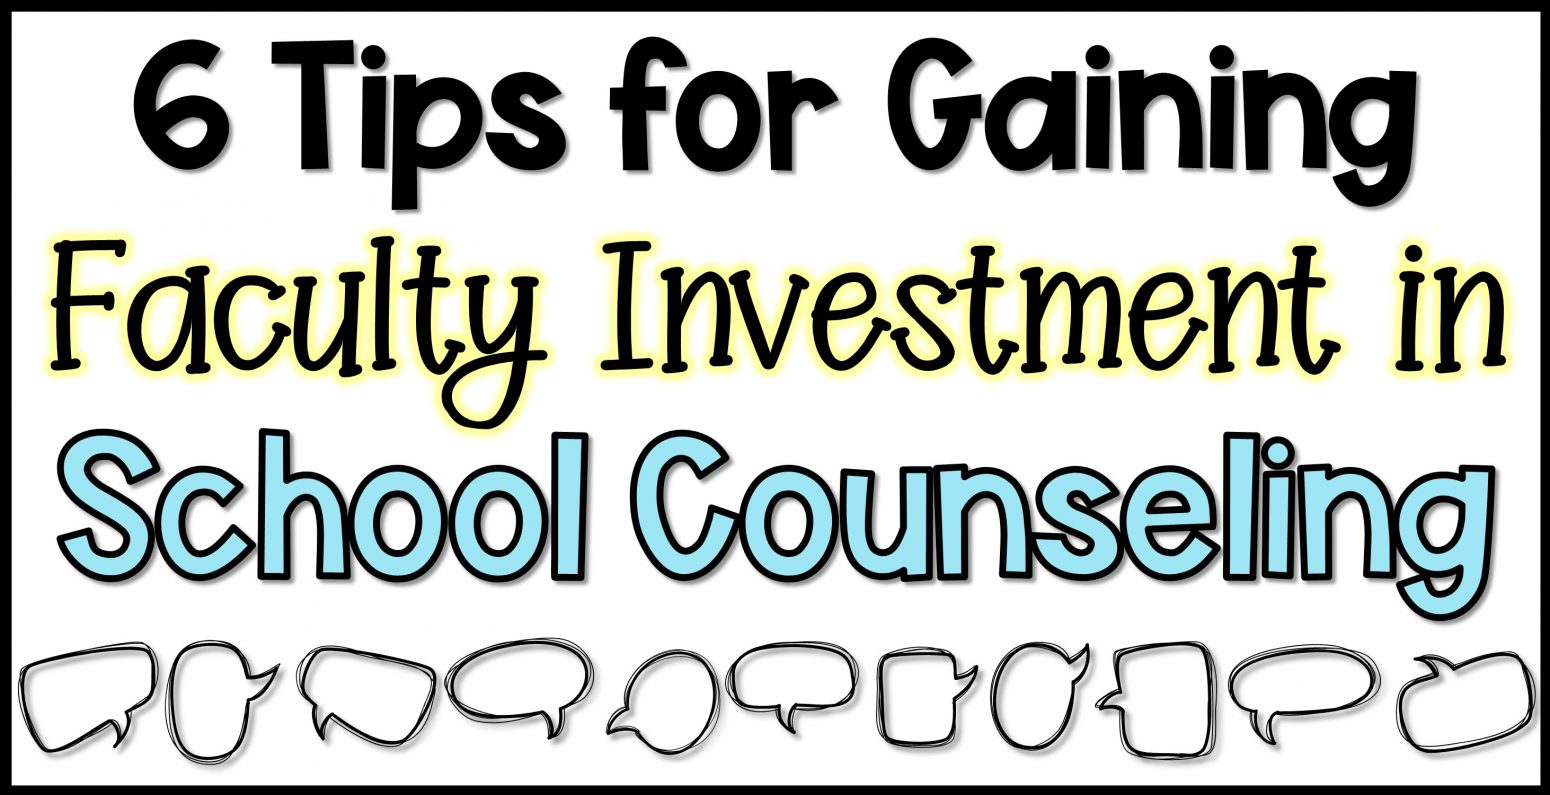 gaining faculty investment in school counseling